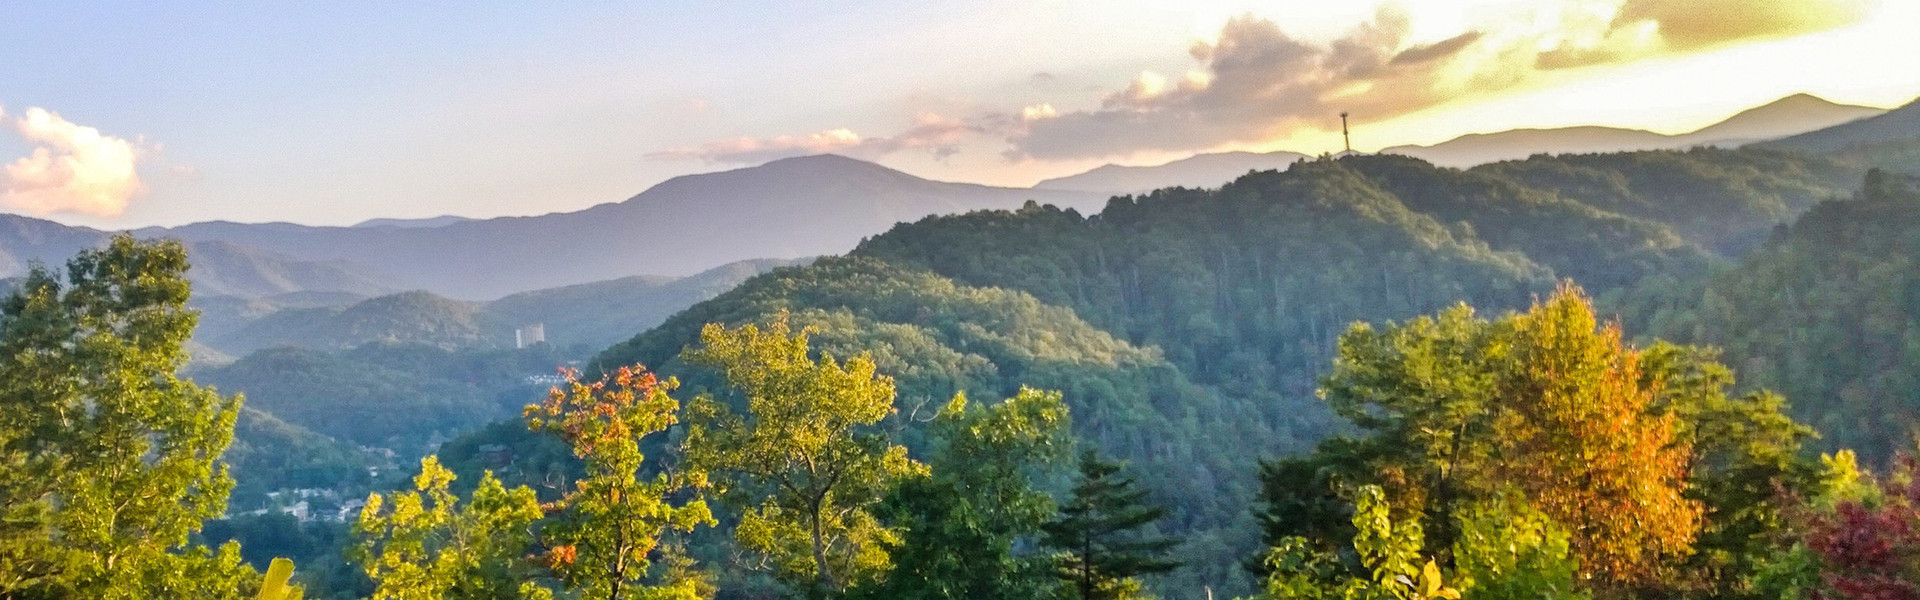 Tennessee Residents Save Up to 15% Off Our Best Nightly Rates | Wild Bear Inn in Pigeon Forge, TN